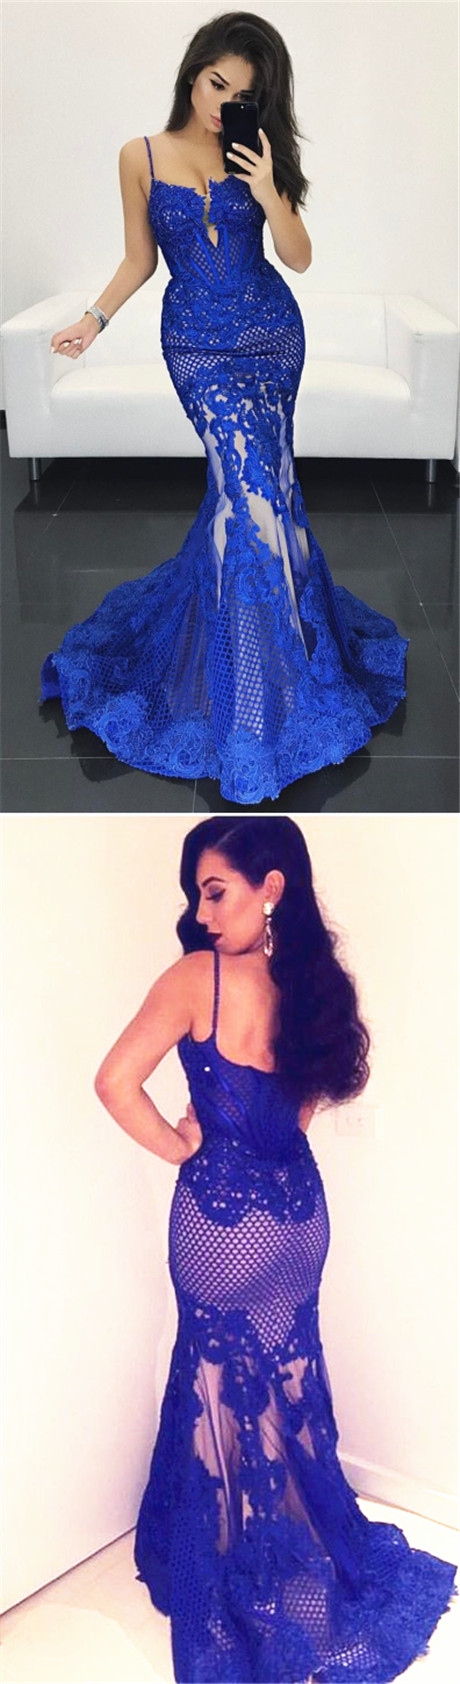 Mermaid Style Spaghetti Straps Long Royal Blue Lace Prom Dress with ...